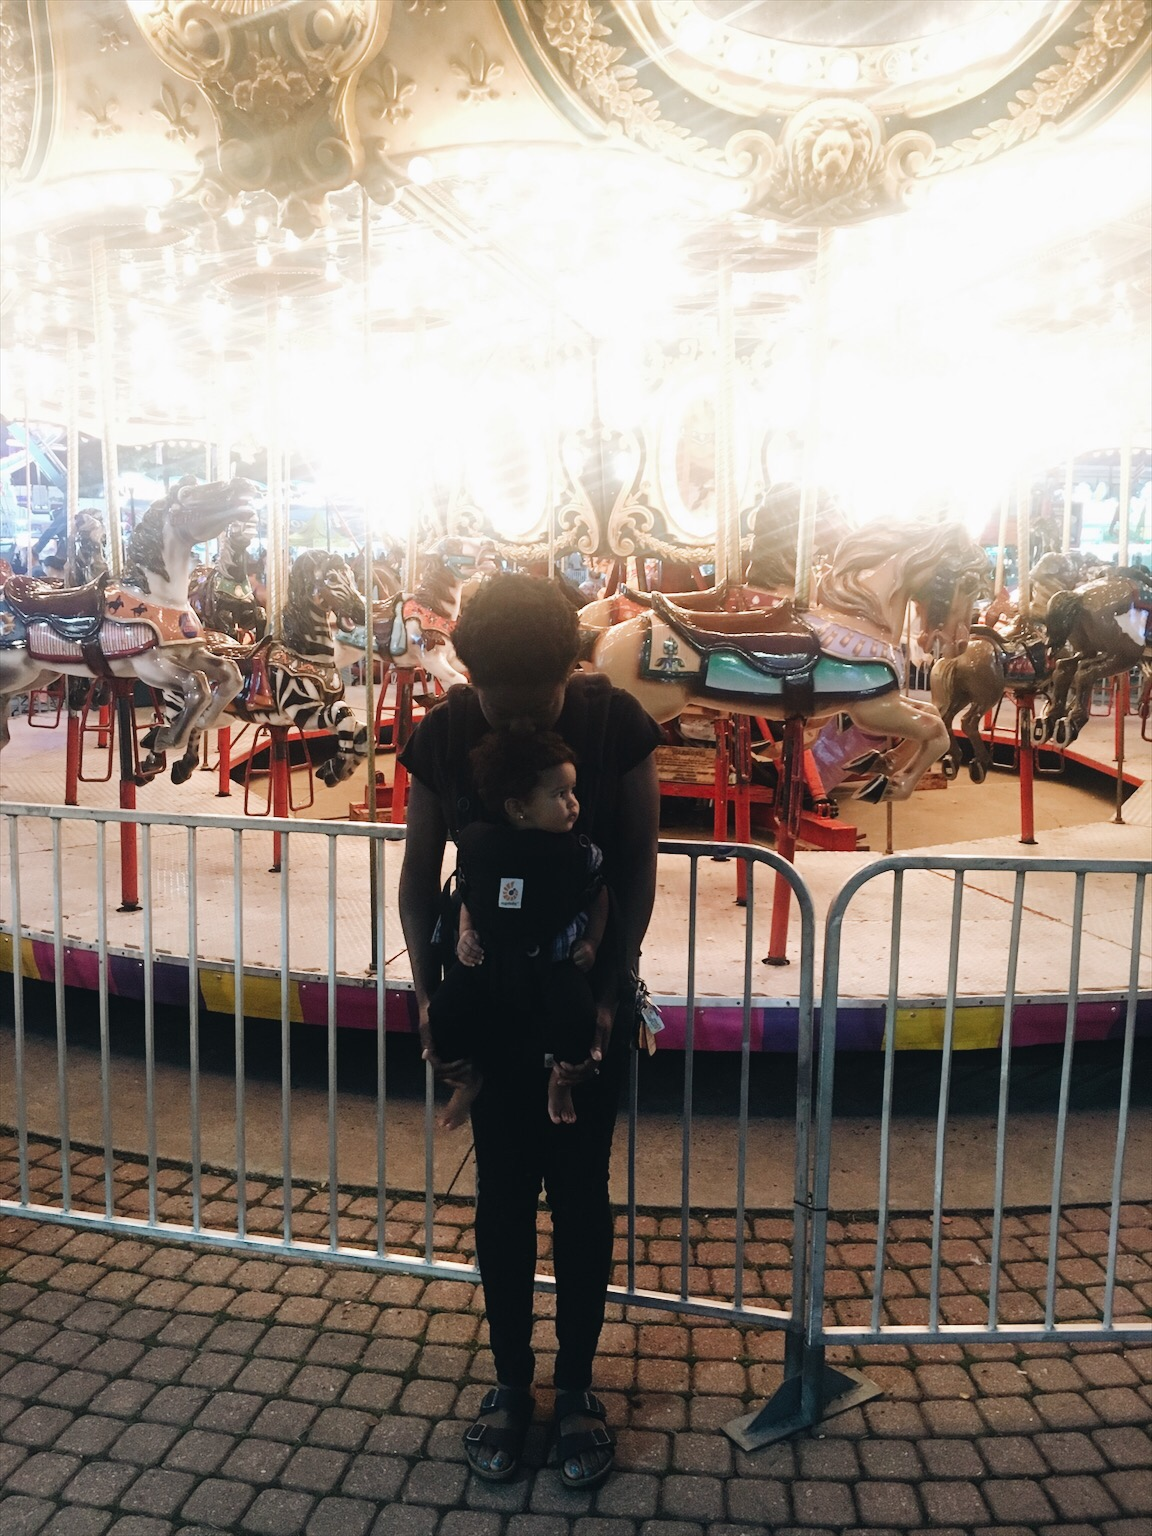 Taking on the Fair in my Ergobaby Omni360